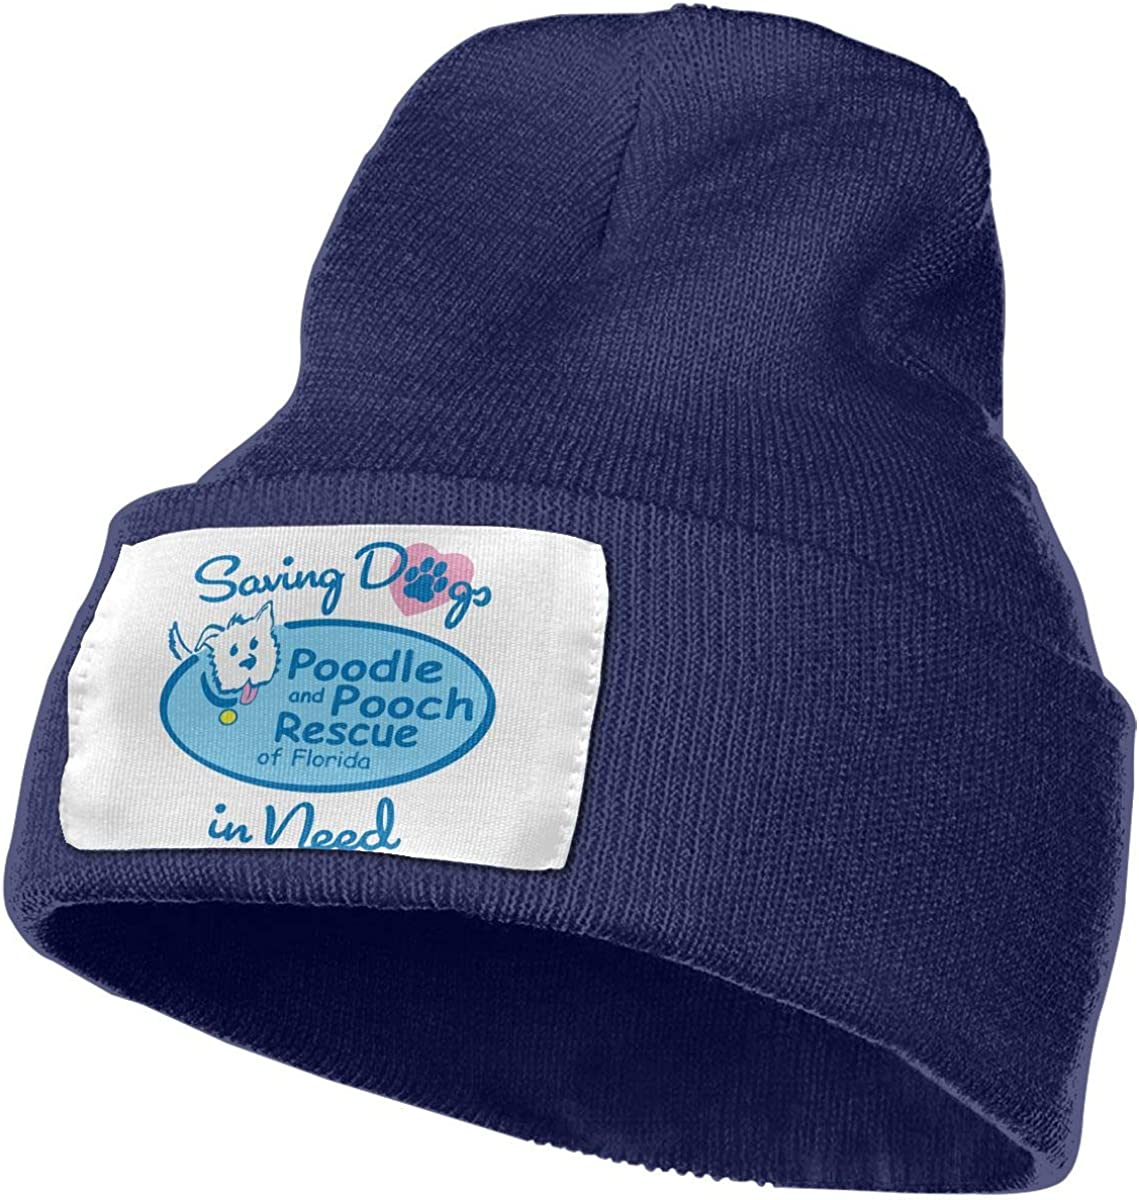 Saving Dogs in Need Rescue Tee Women and Men Skull Caps Winter Warm Stretchy Knitting Beanie Hats